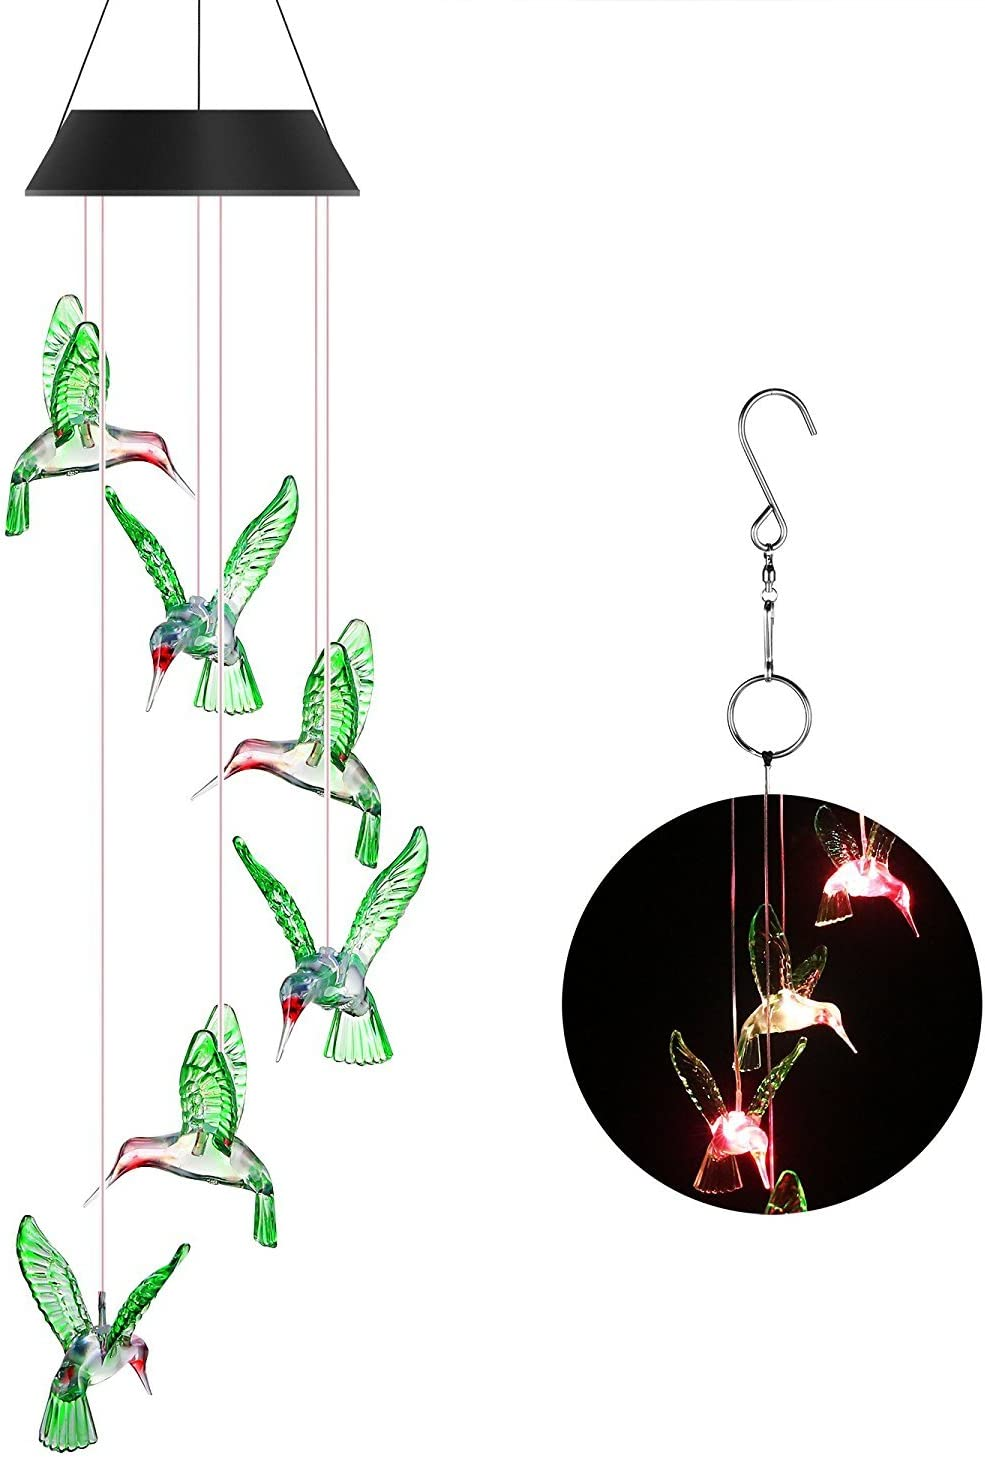 OKSS Solar Wind Chime Light, Color-Changing Solar LED Mobile Wind Chime Waterproof Six Hummingbird Wind Chimes for Home/Party/Night/Garden/Festival Decor/Valentines